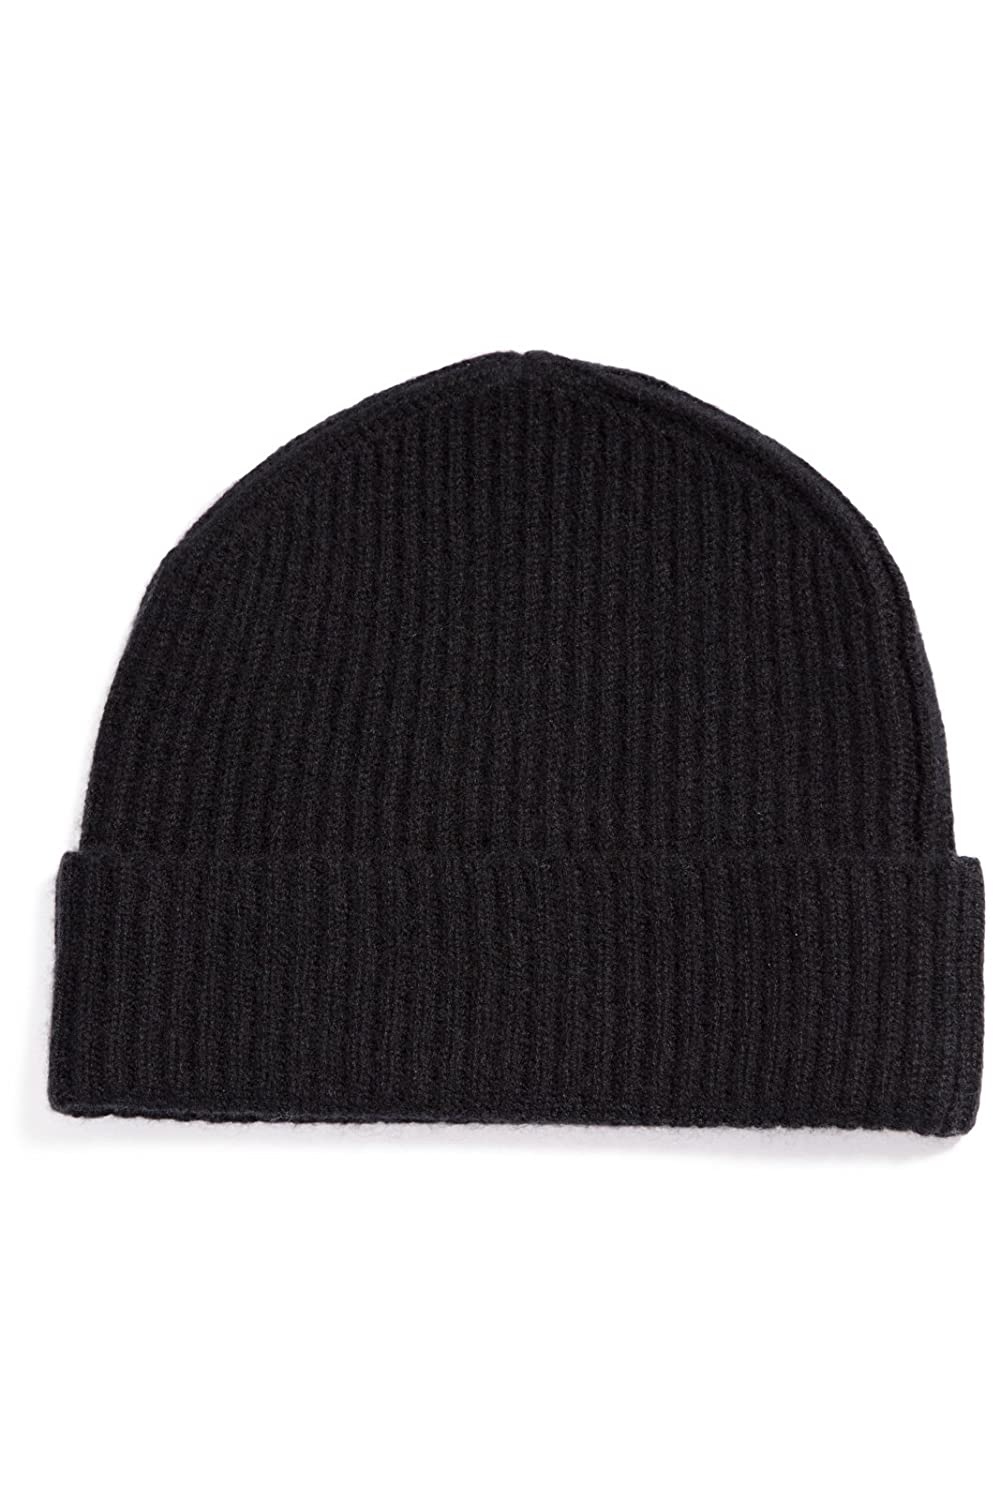 0da83681b085c Fishers Finery Women s 100% Cashmere Ribbed Hat  Cuffed  Super Soft (Black)  at Amazon Women s Clothing store